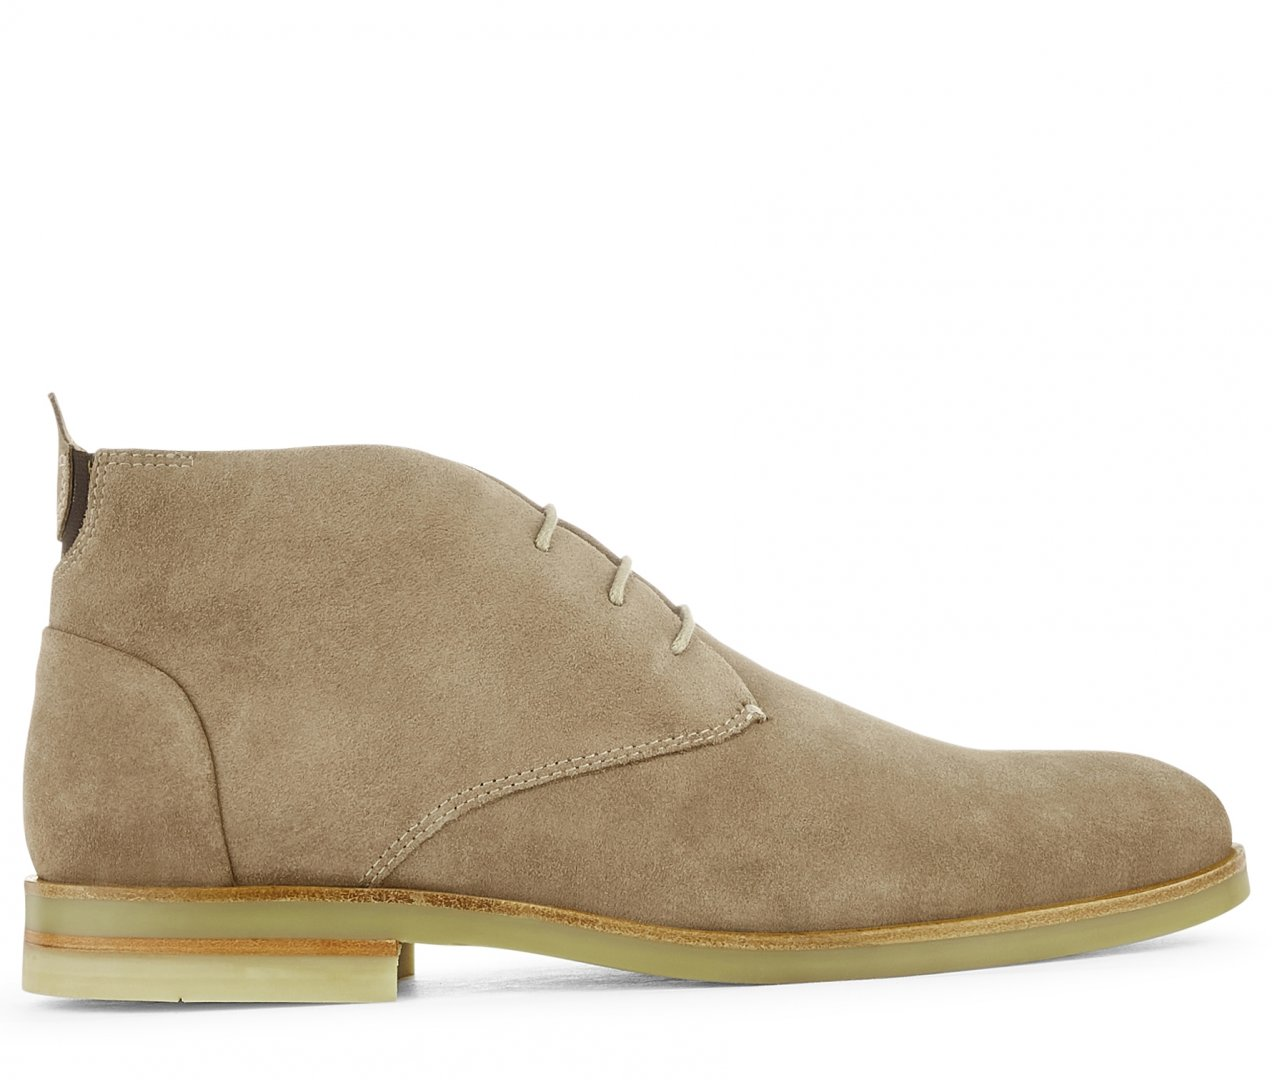 Hudson Shoes Taupe Suede Bedlington Suede Taupe Boot